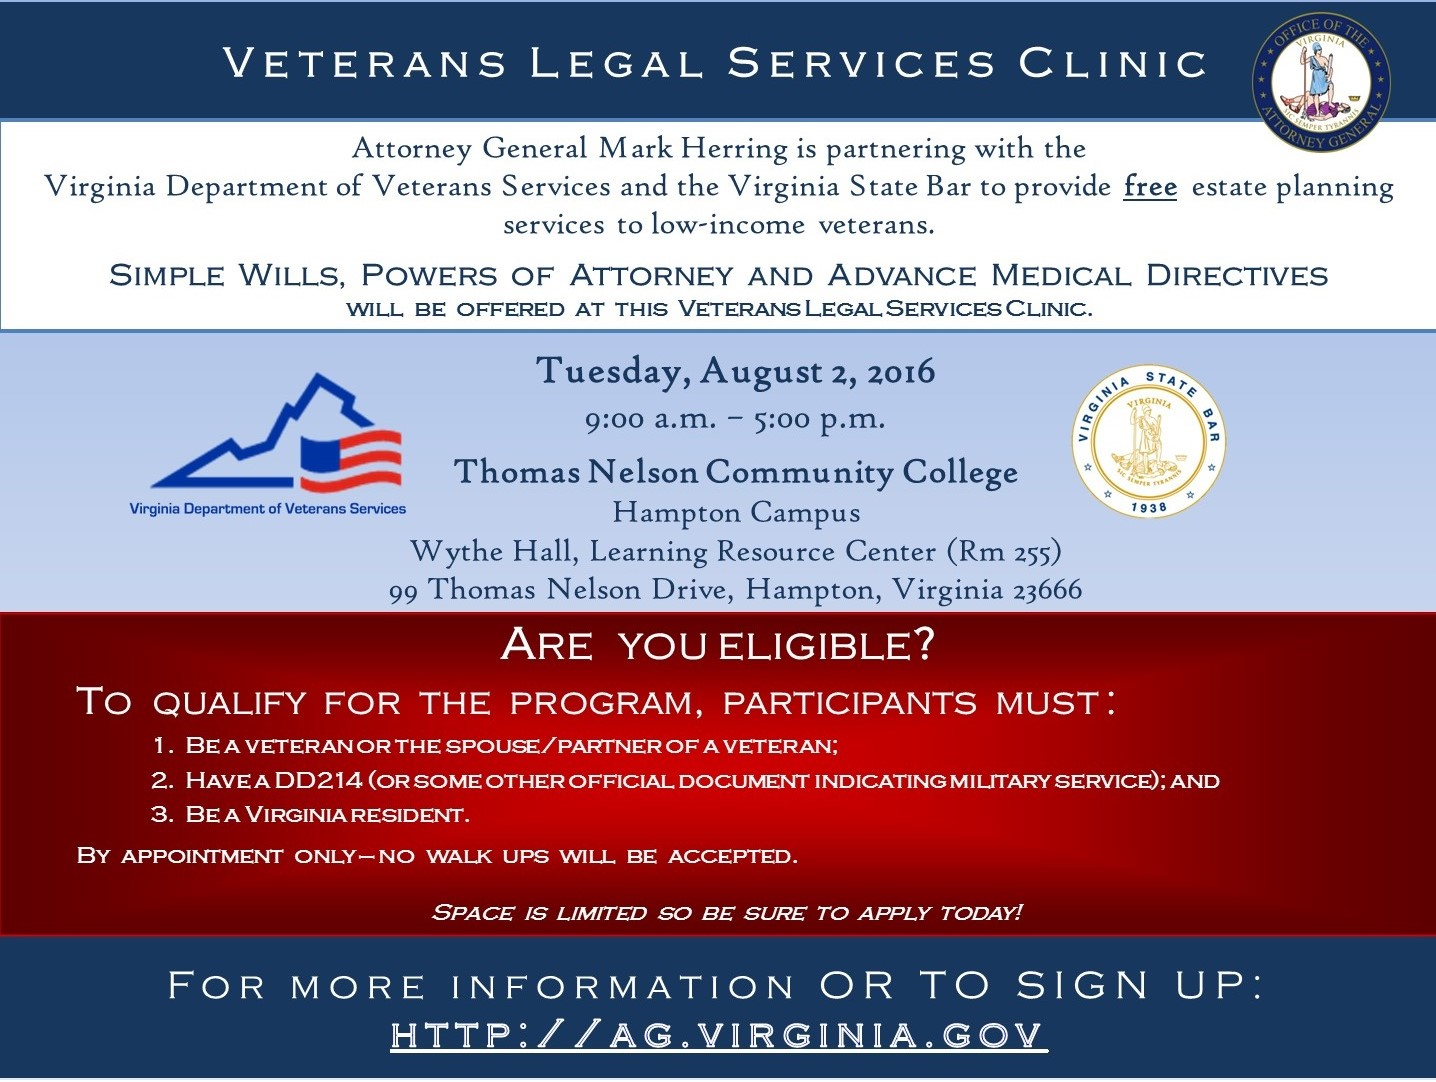 Veteran Legal Services Clinic Flyer